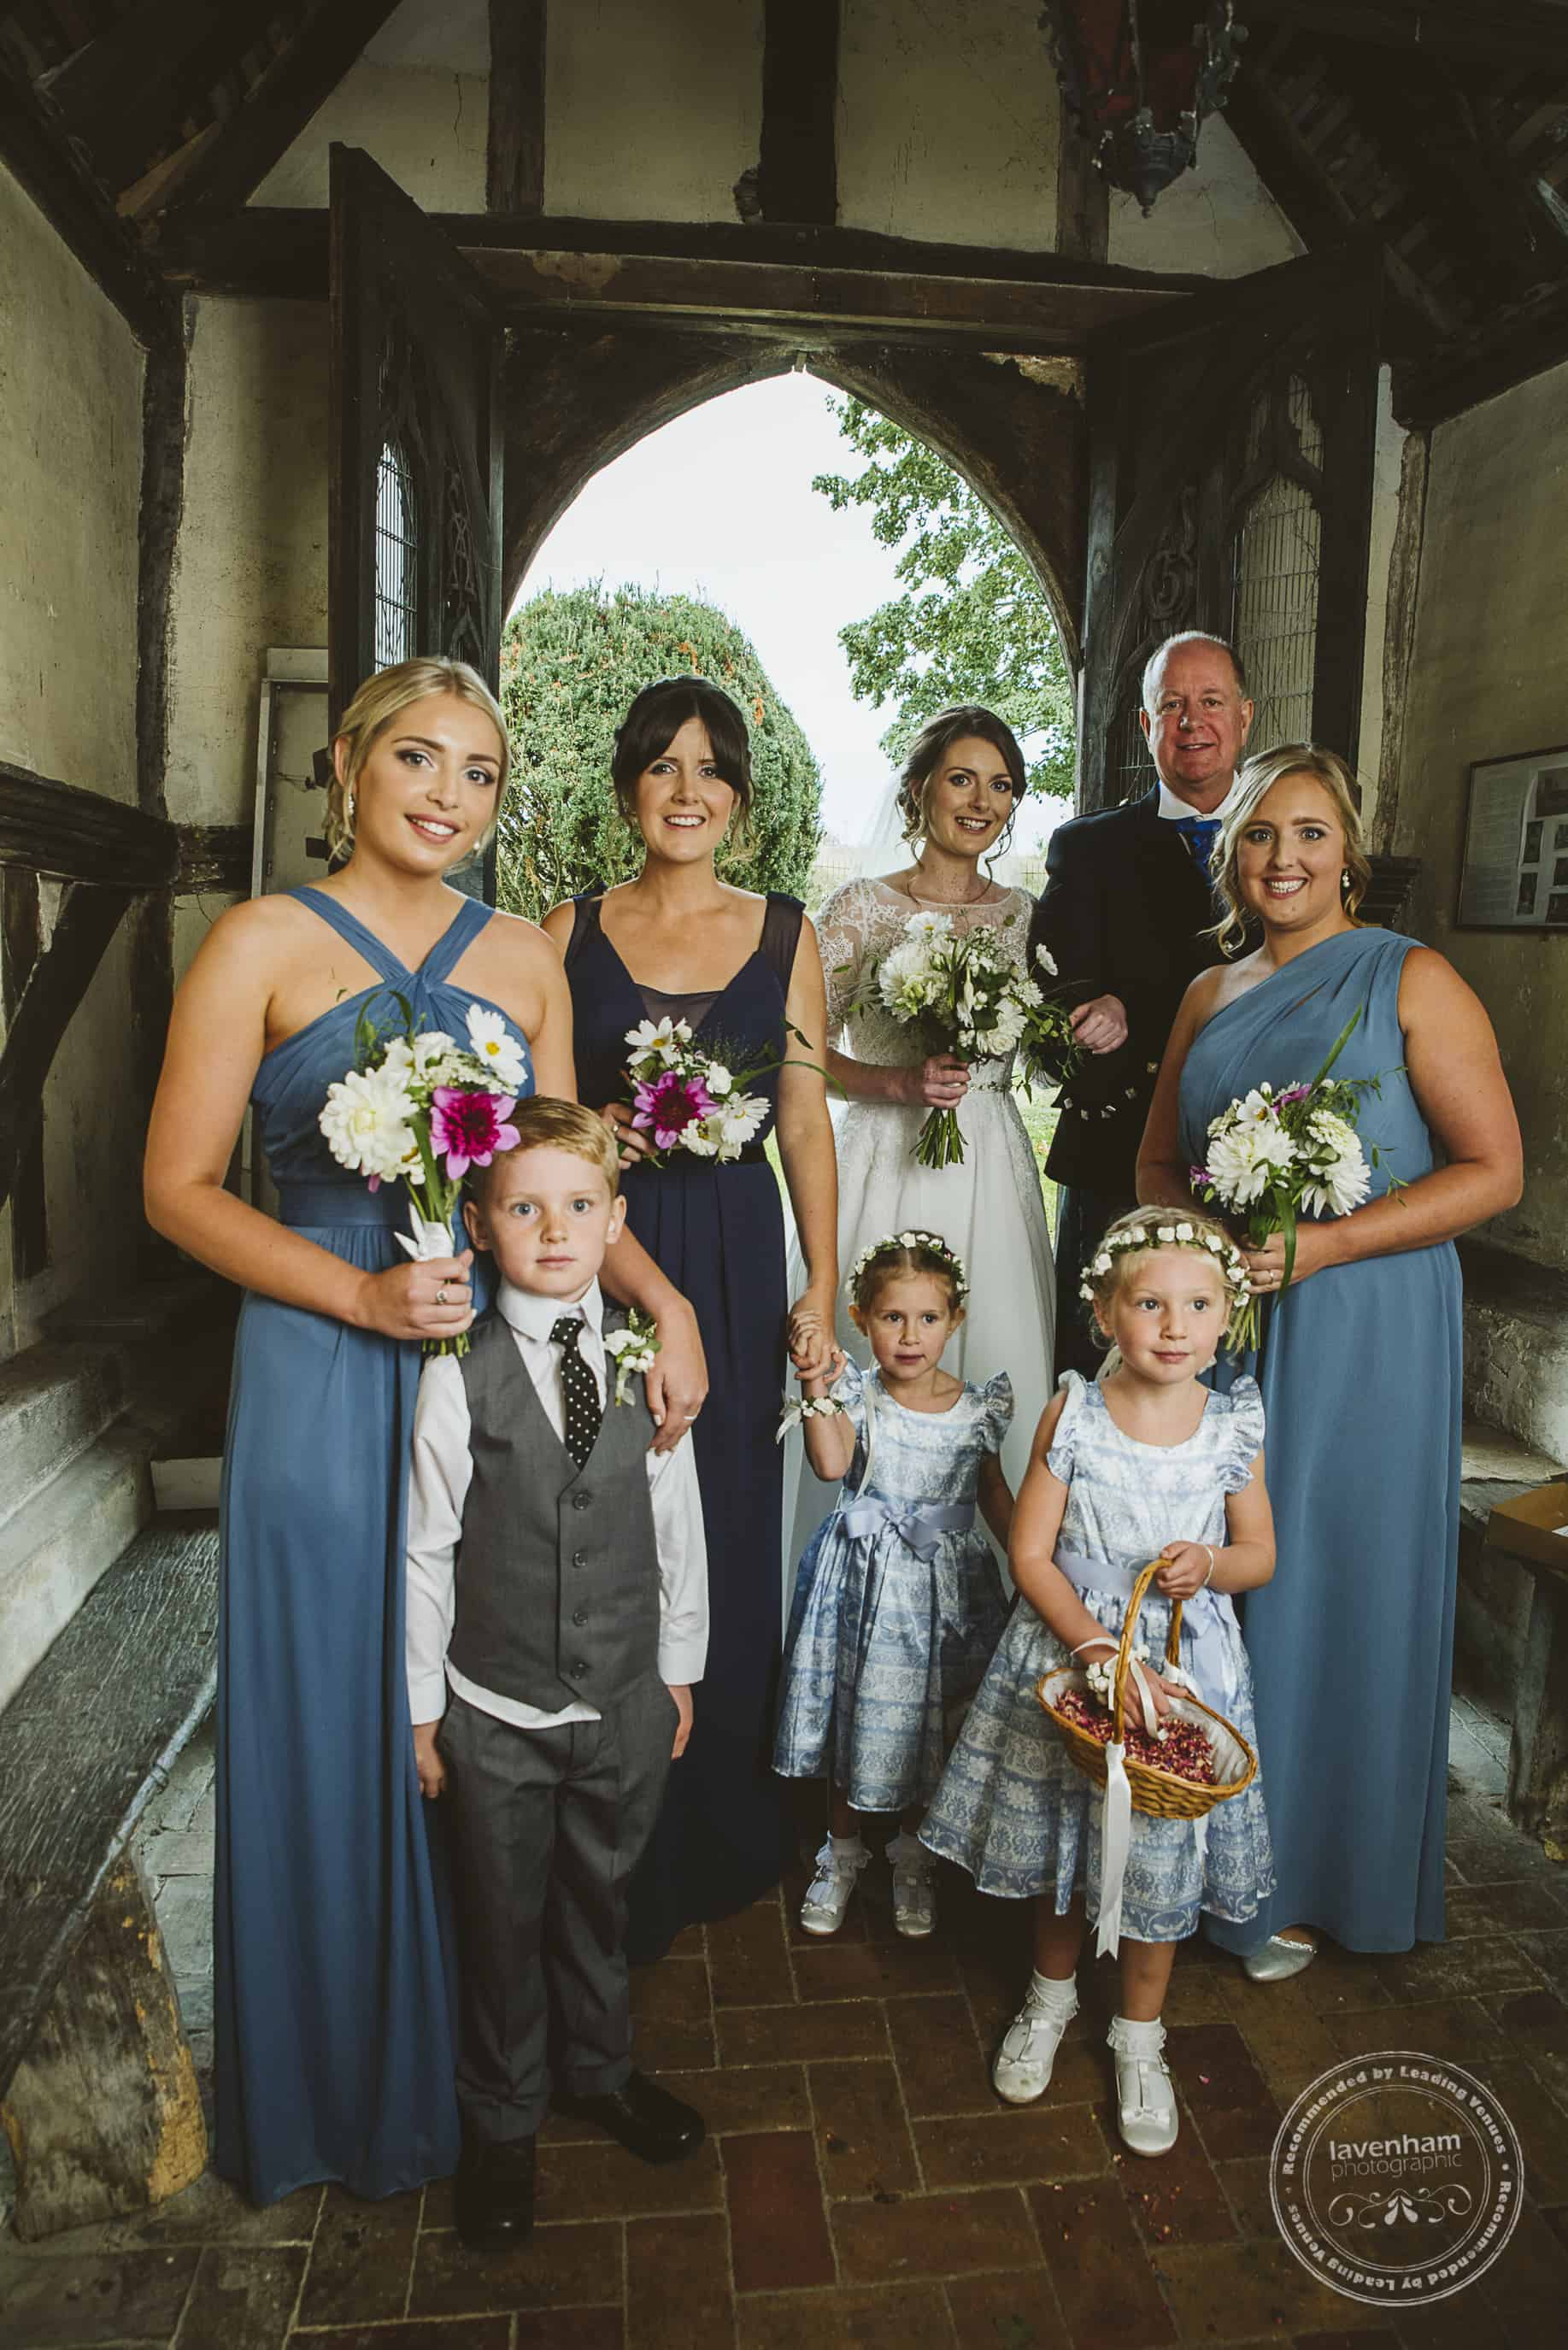 220918 Alpheton Barn Wedding Photography by Lavenham Photographic 043